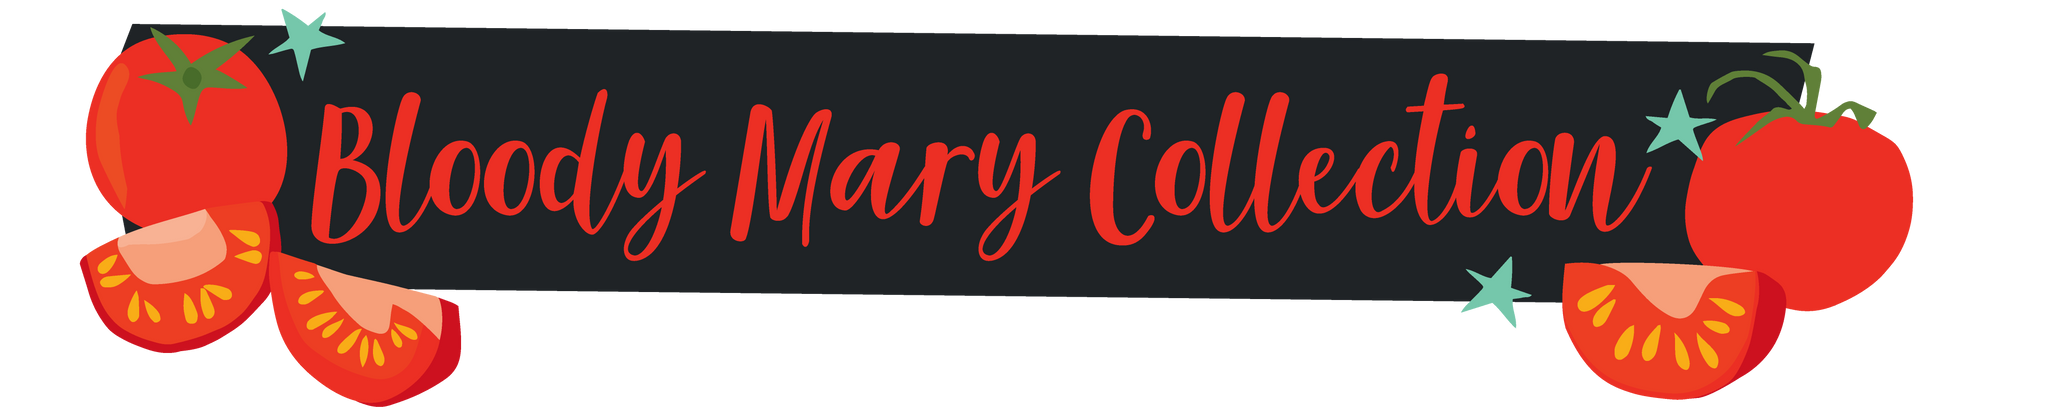 Bloody Mary Collection Header